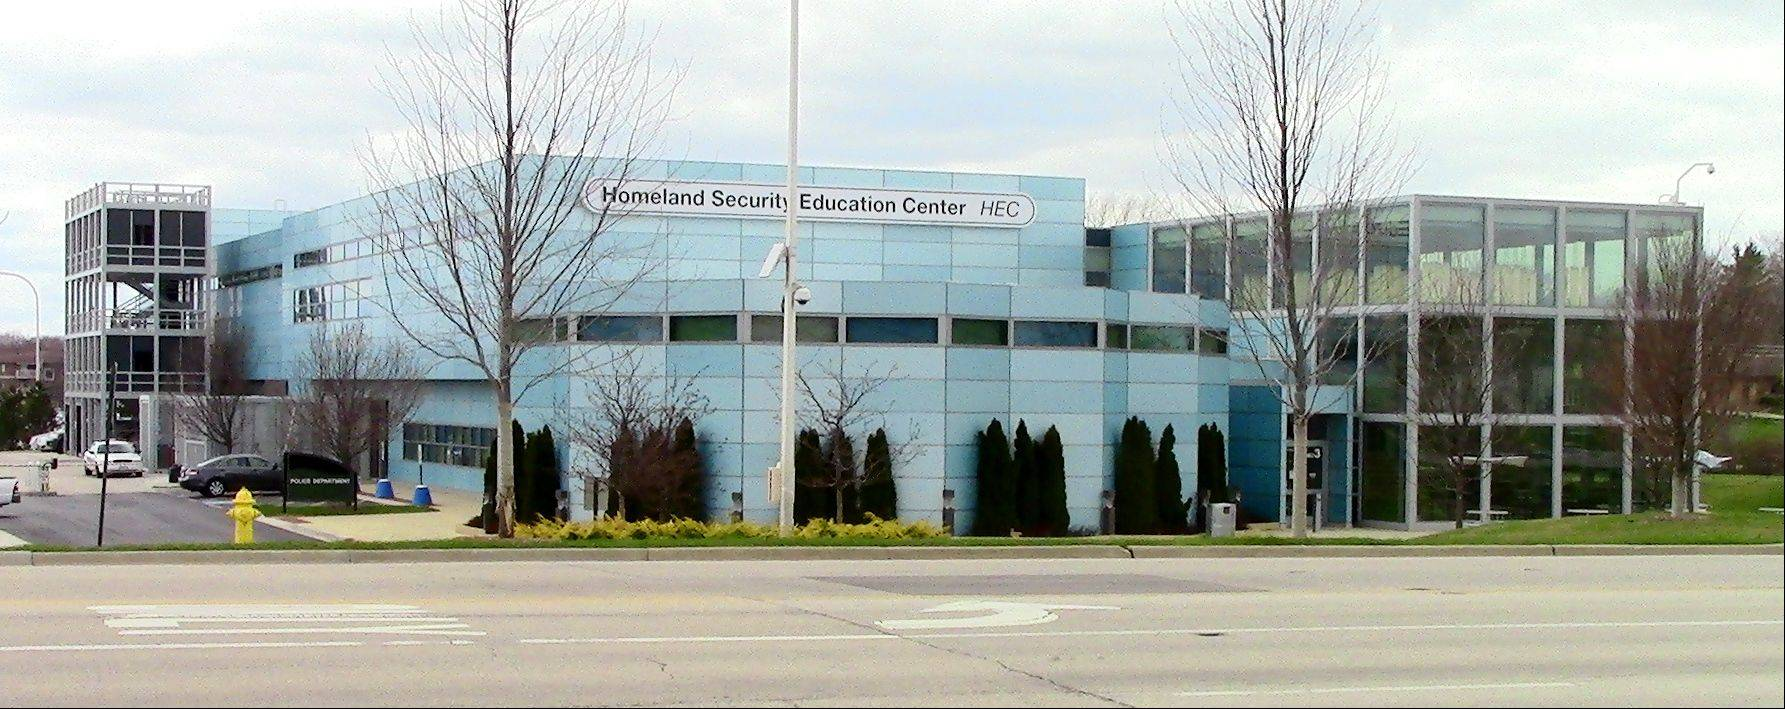 The College of DuPage's Homeland Security Education Center offers a wide range of incident response training classes.